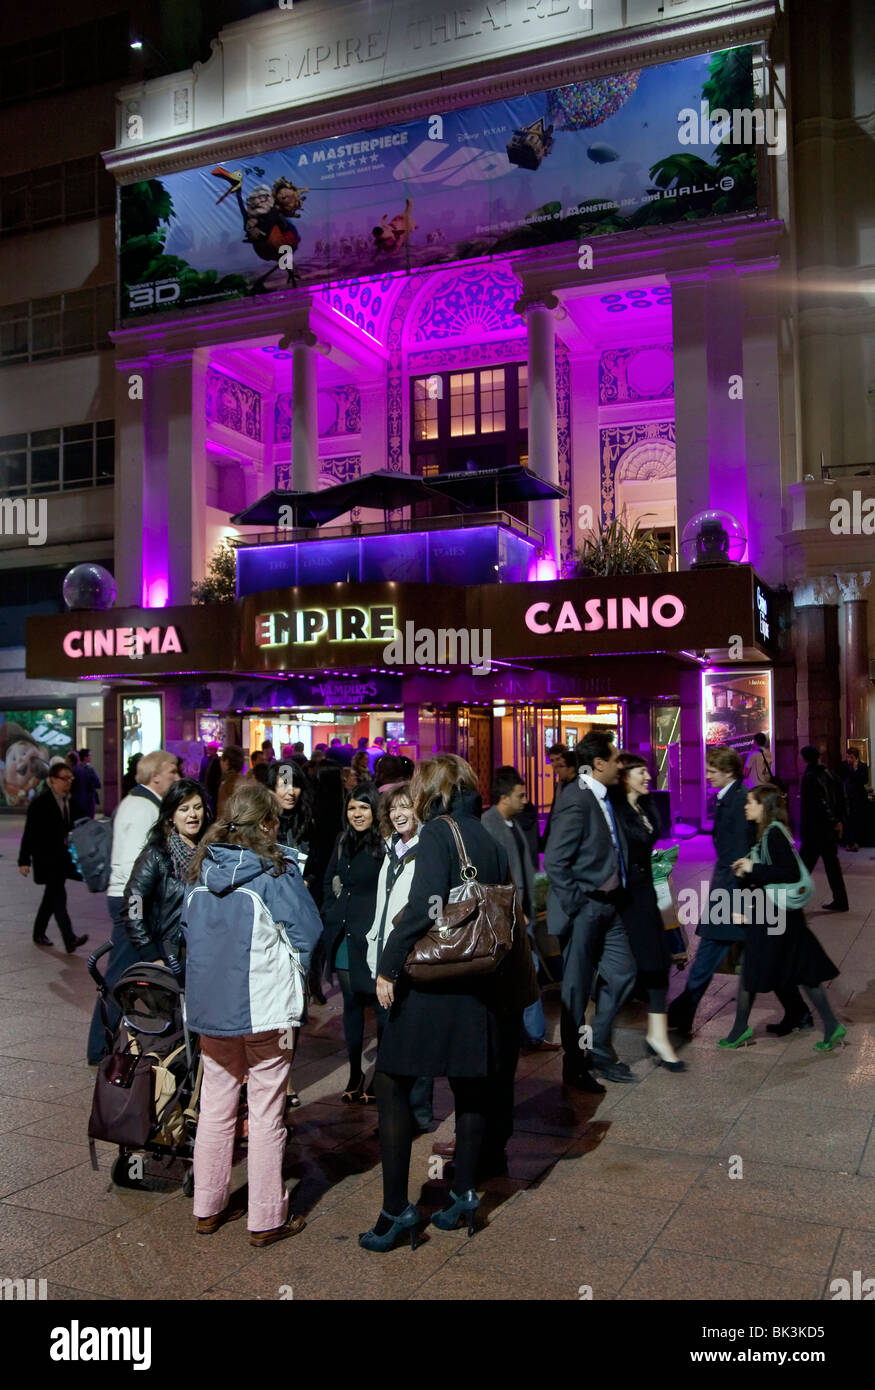 Leicester Square, West End, London, England - Stock Image